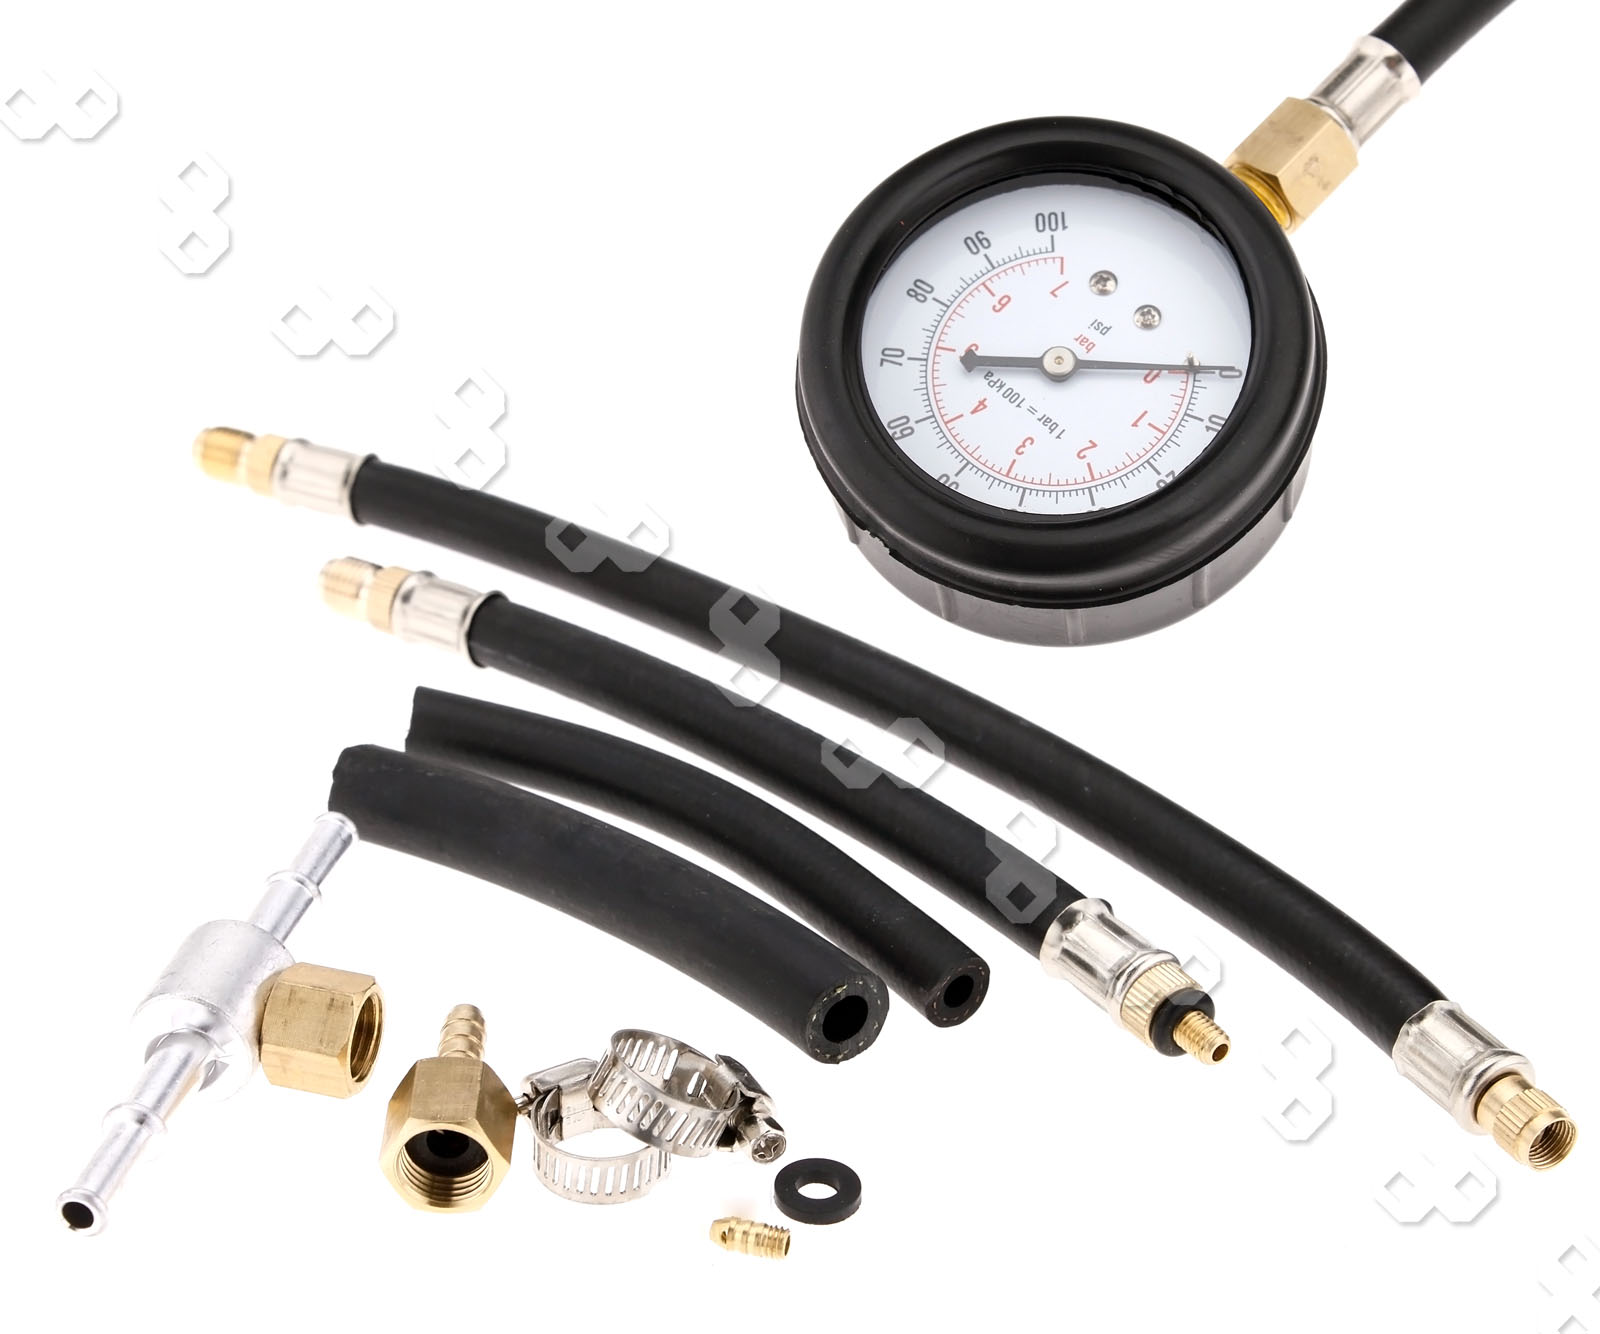 Fuel injection pump pressure tester injector test